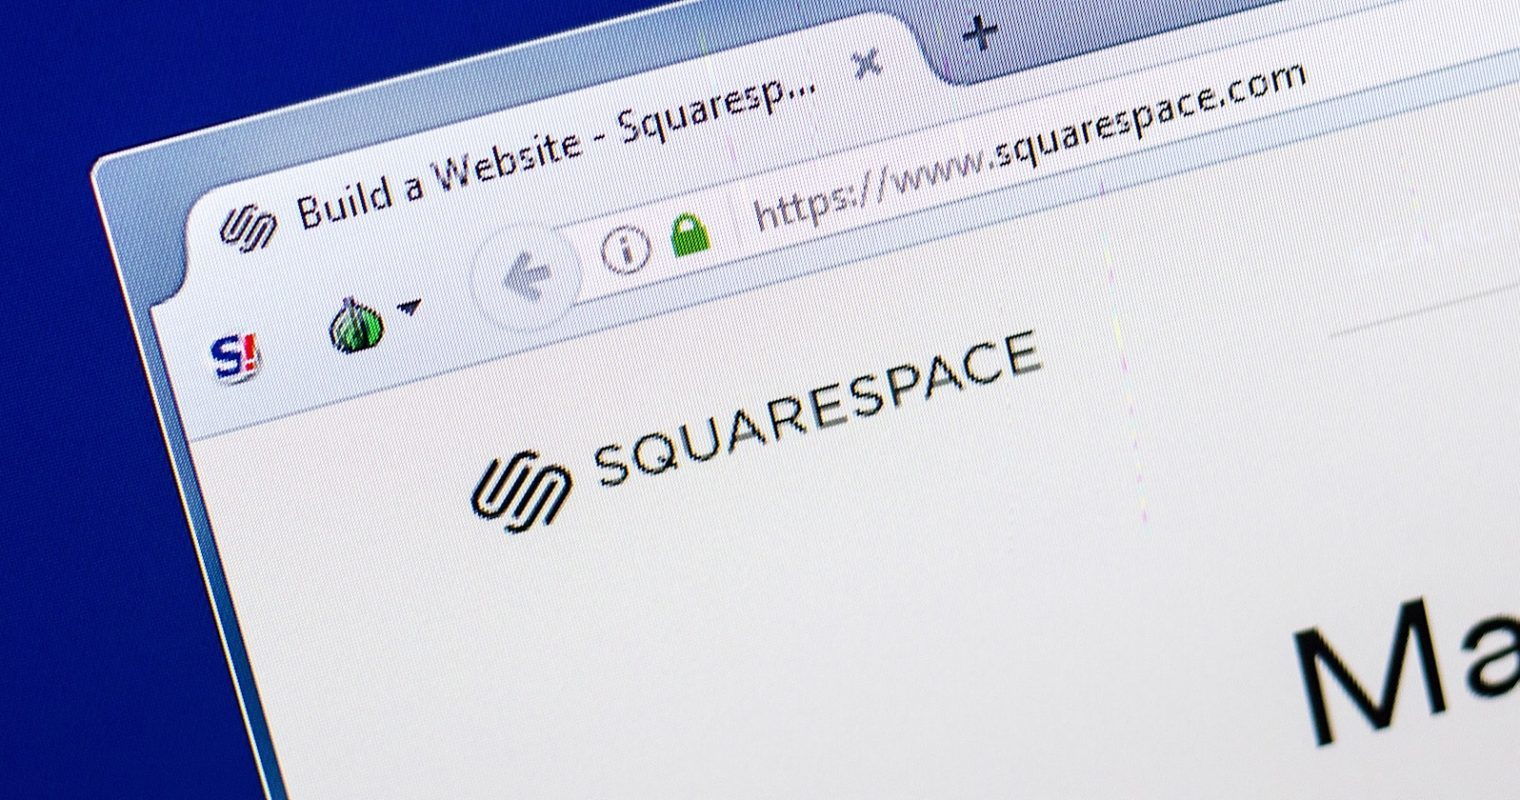 Google Integrates Search Console With Squarespace